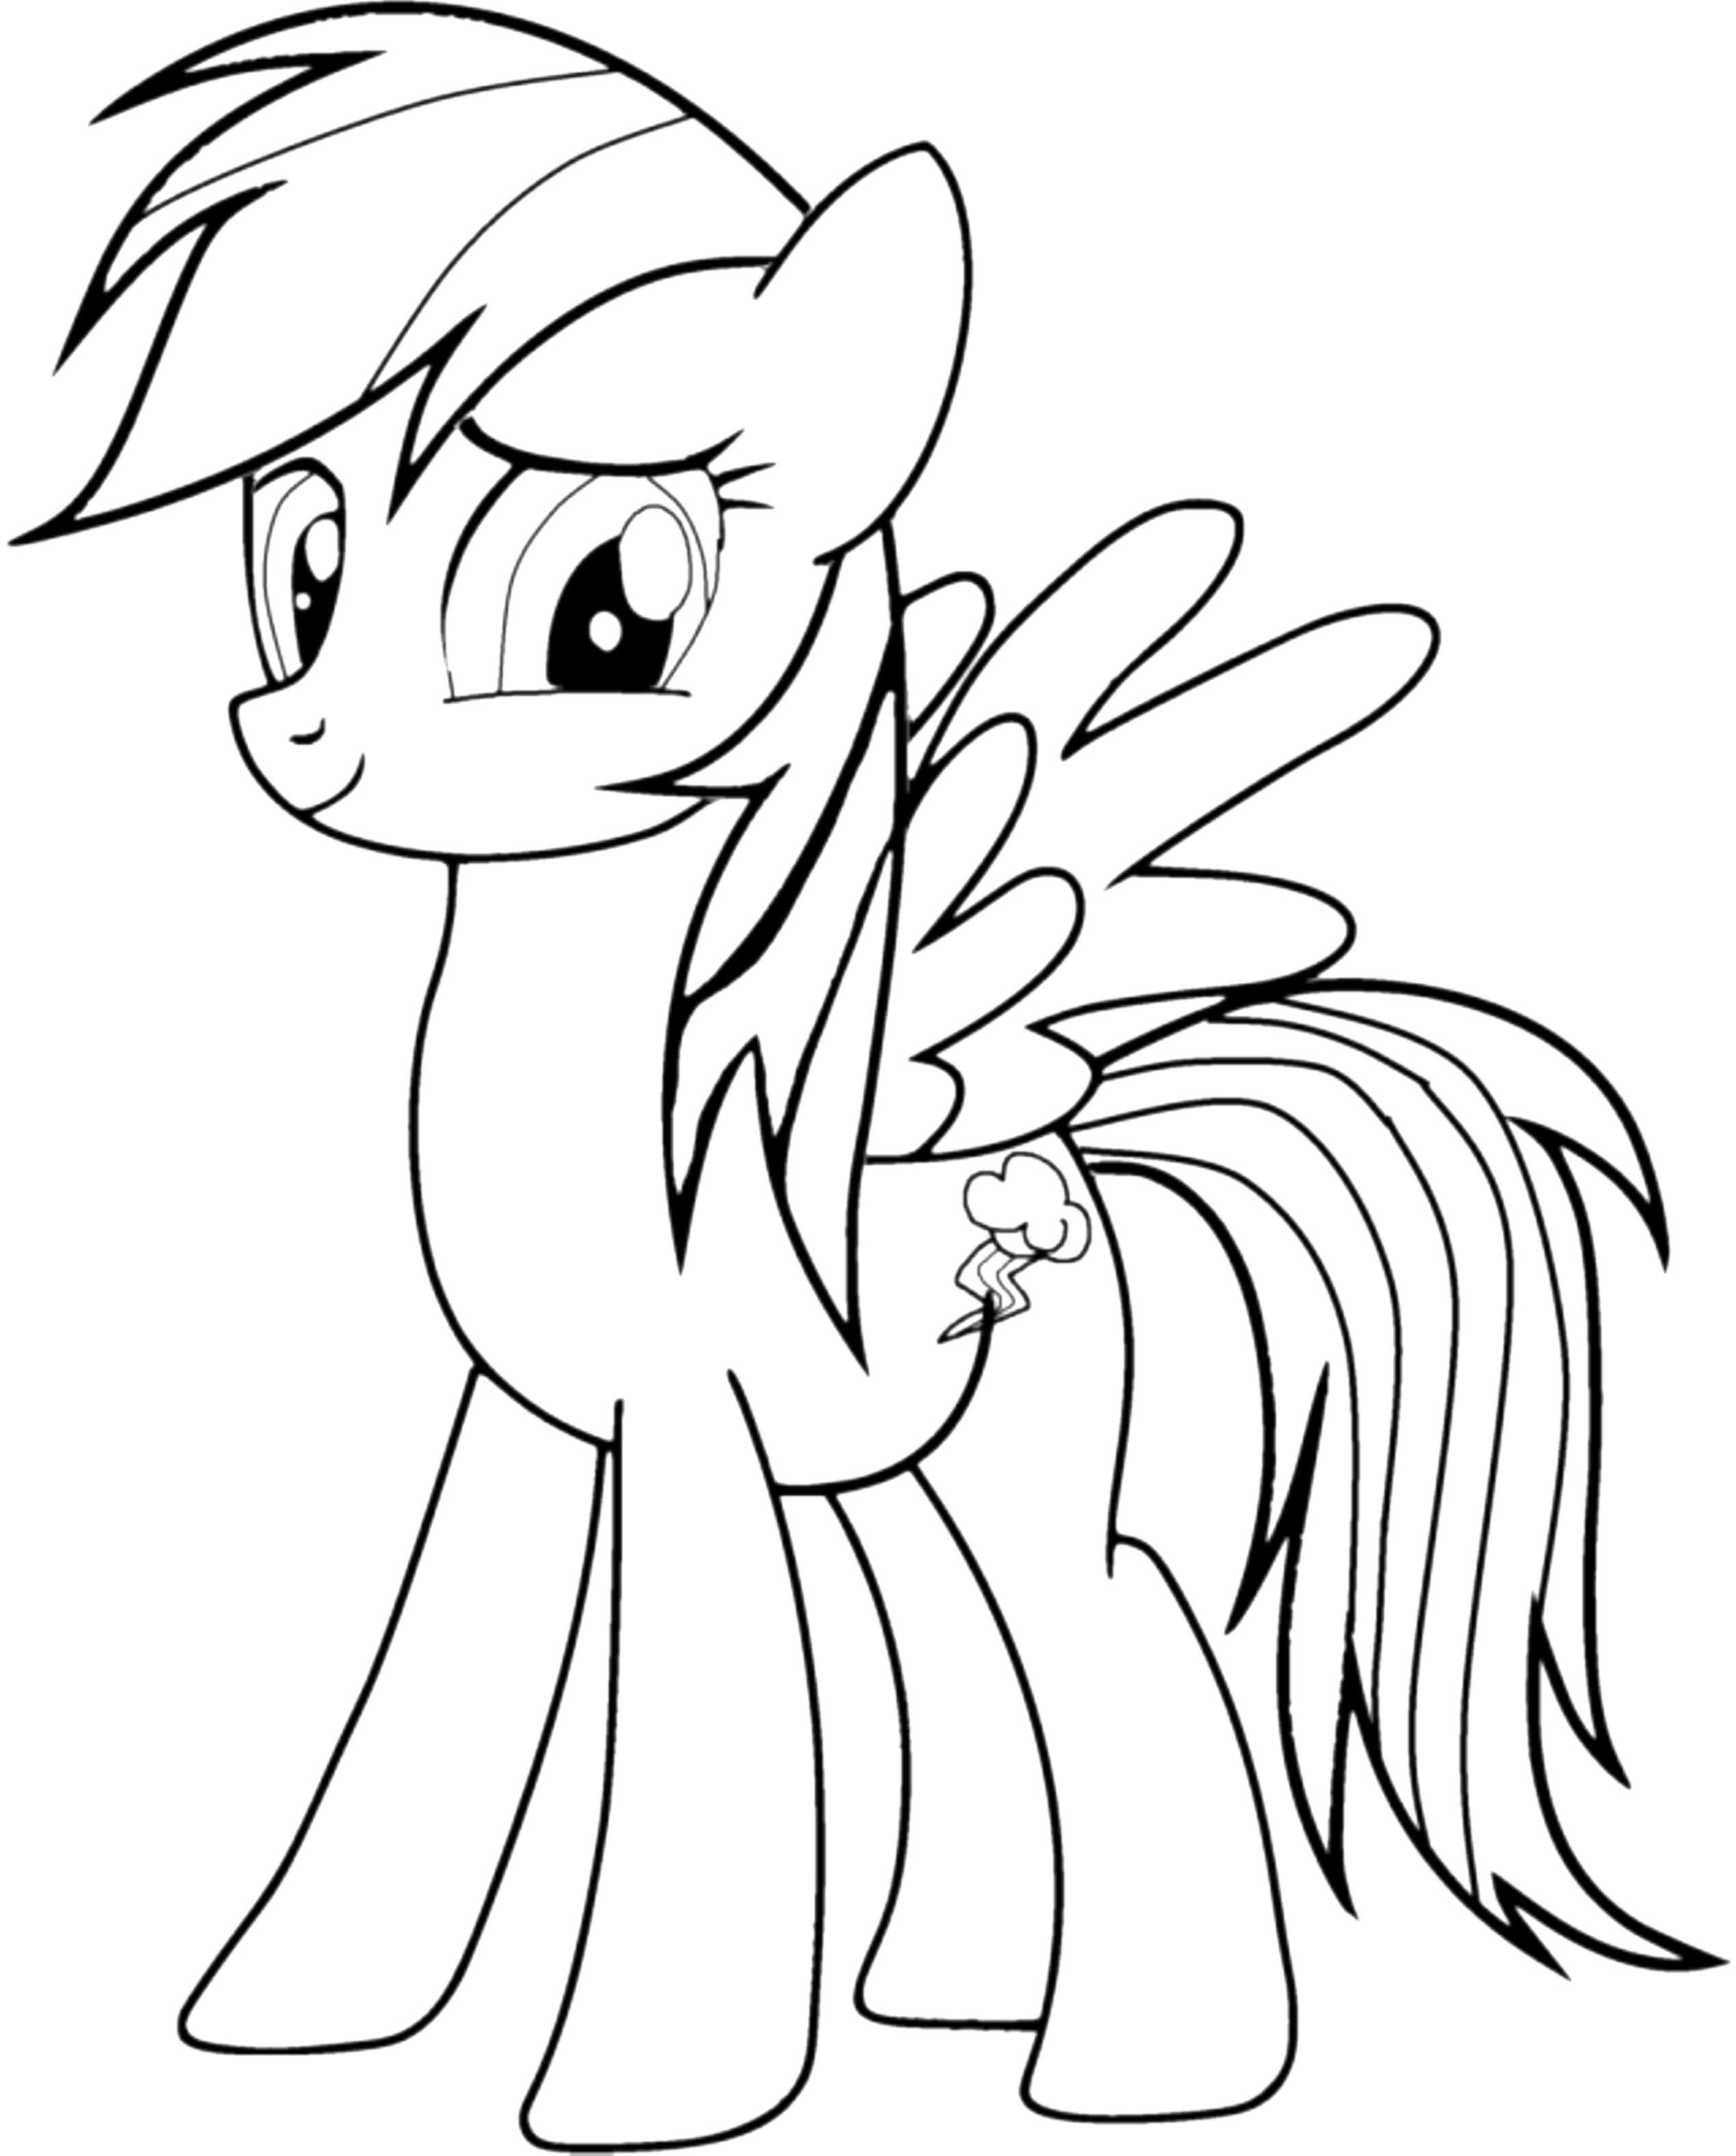 Rainbow dash coloring pages best coloring pages for kids for May coloring pages printable